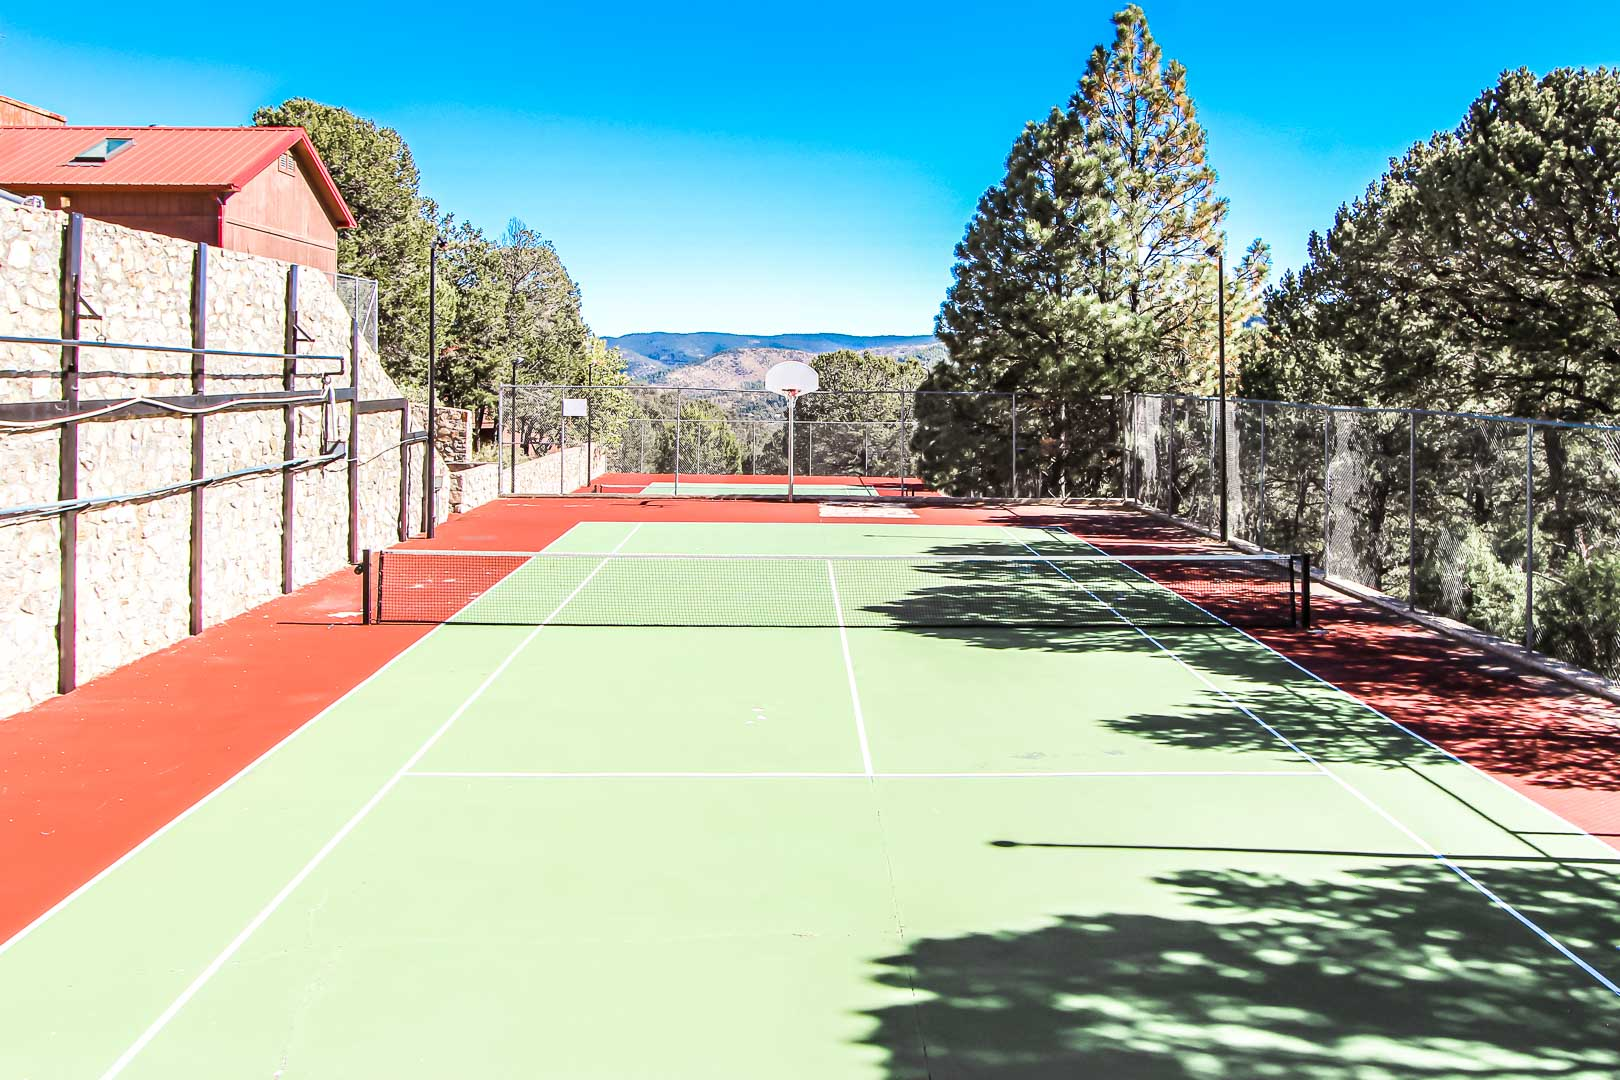 An ample view of the tennis courts at VRI's Crown Point Condominiums in New Mexico.